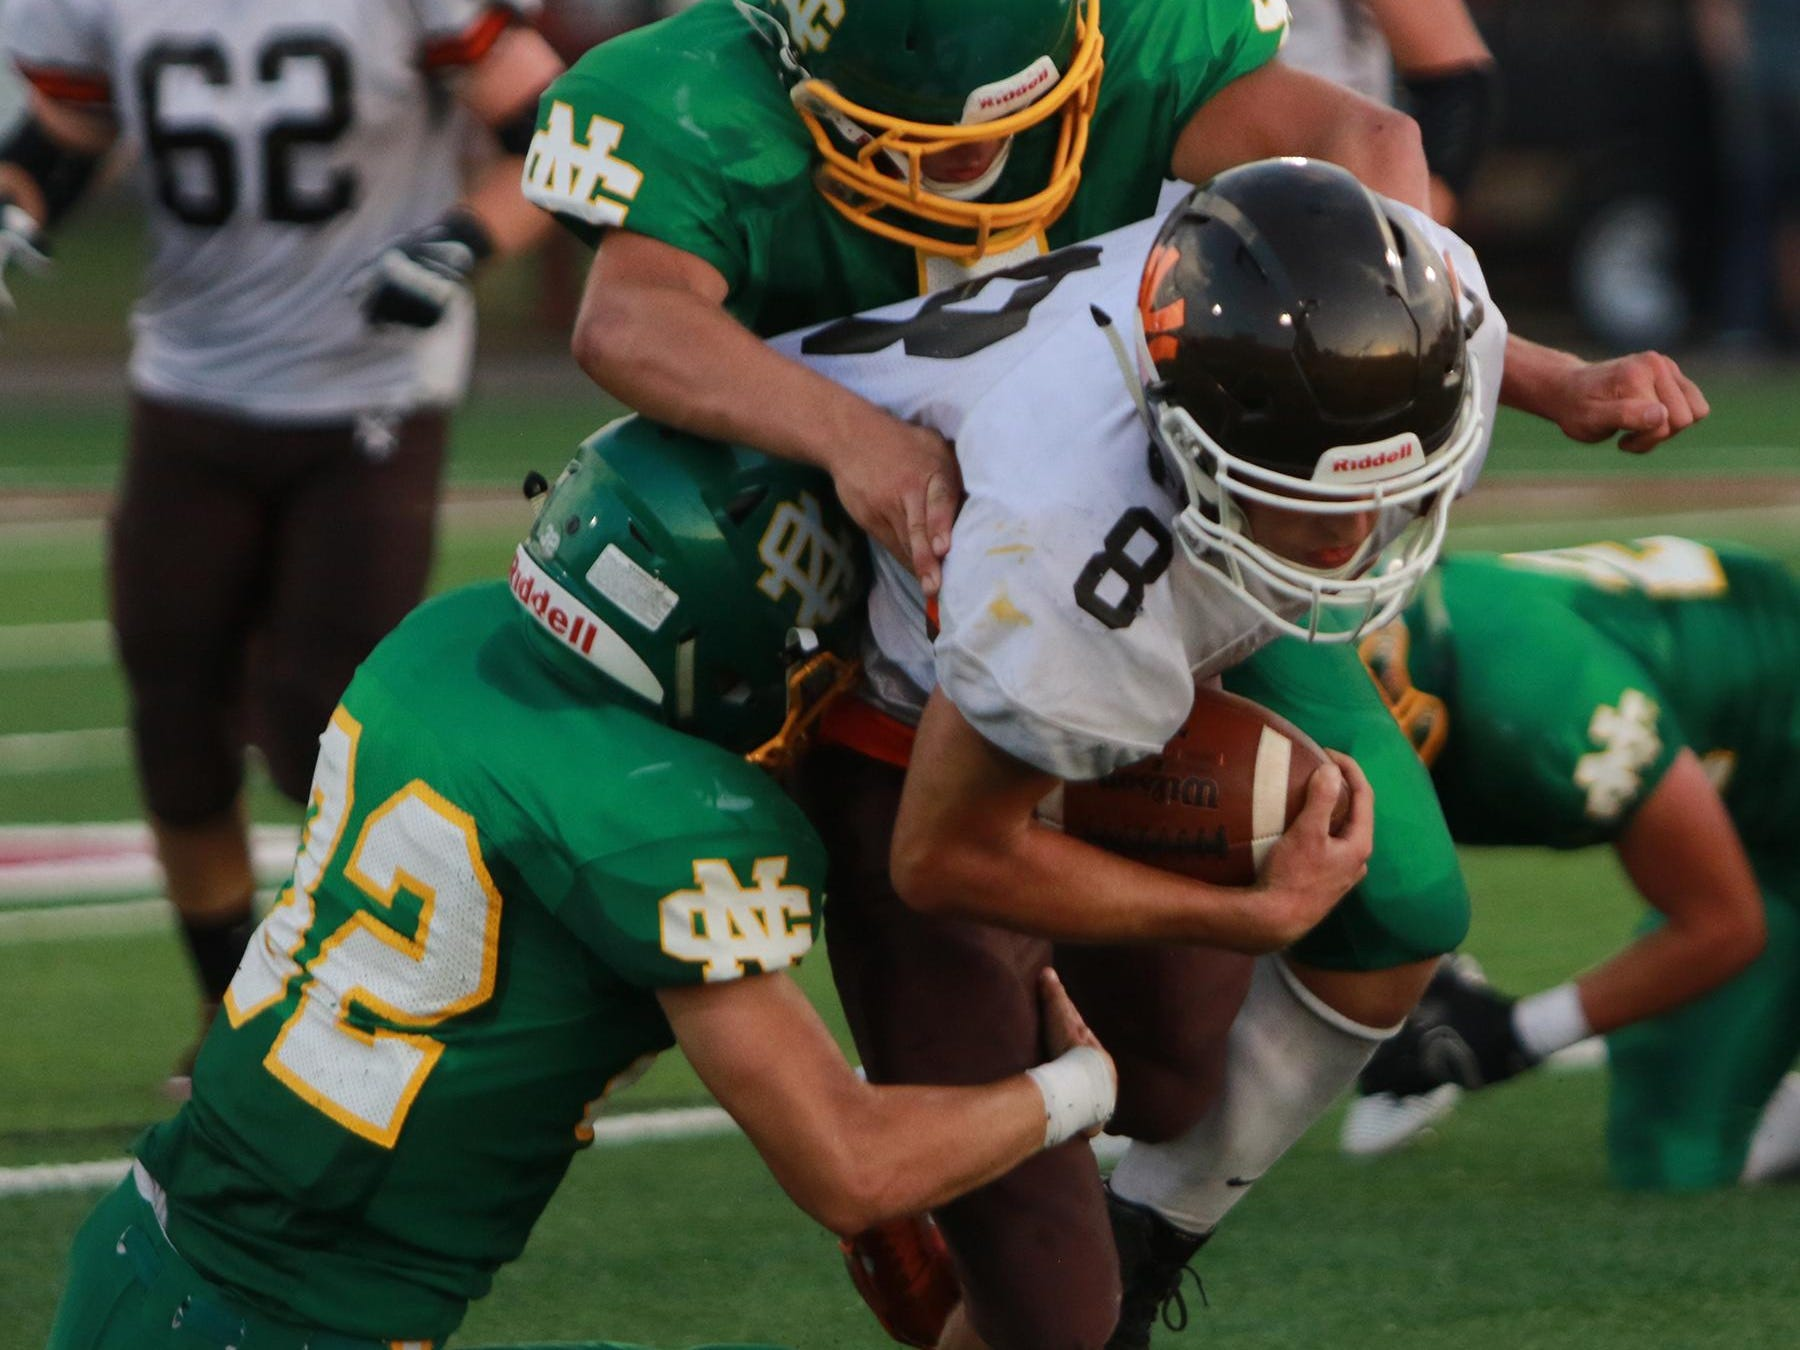 Jud Lewis and Sam Bending tackleHunter Edwards of Nelsonville-York in their first home game of the season.